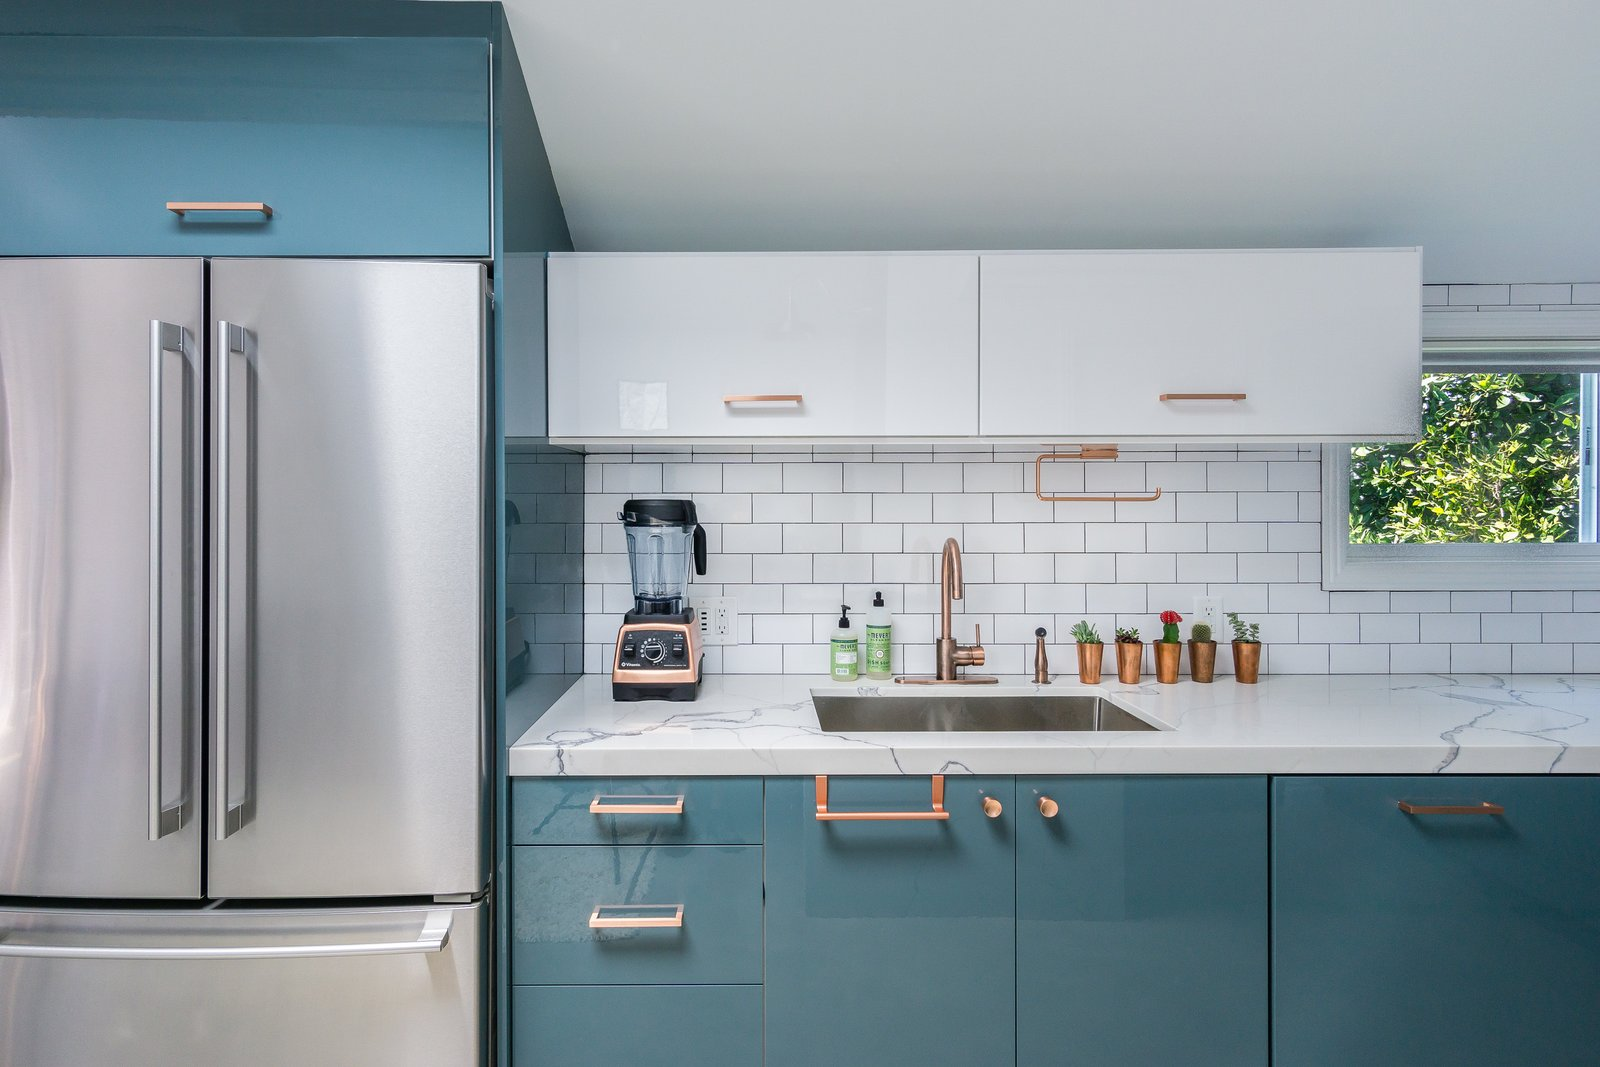 Kitchen, Refrigerator, and Subway Tile Backsplashe  Guest House and Work Space - Los Angeles by Mario Peixoto Photography